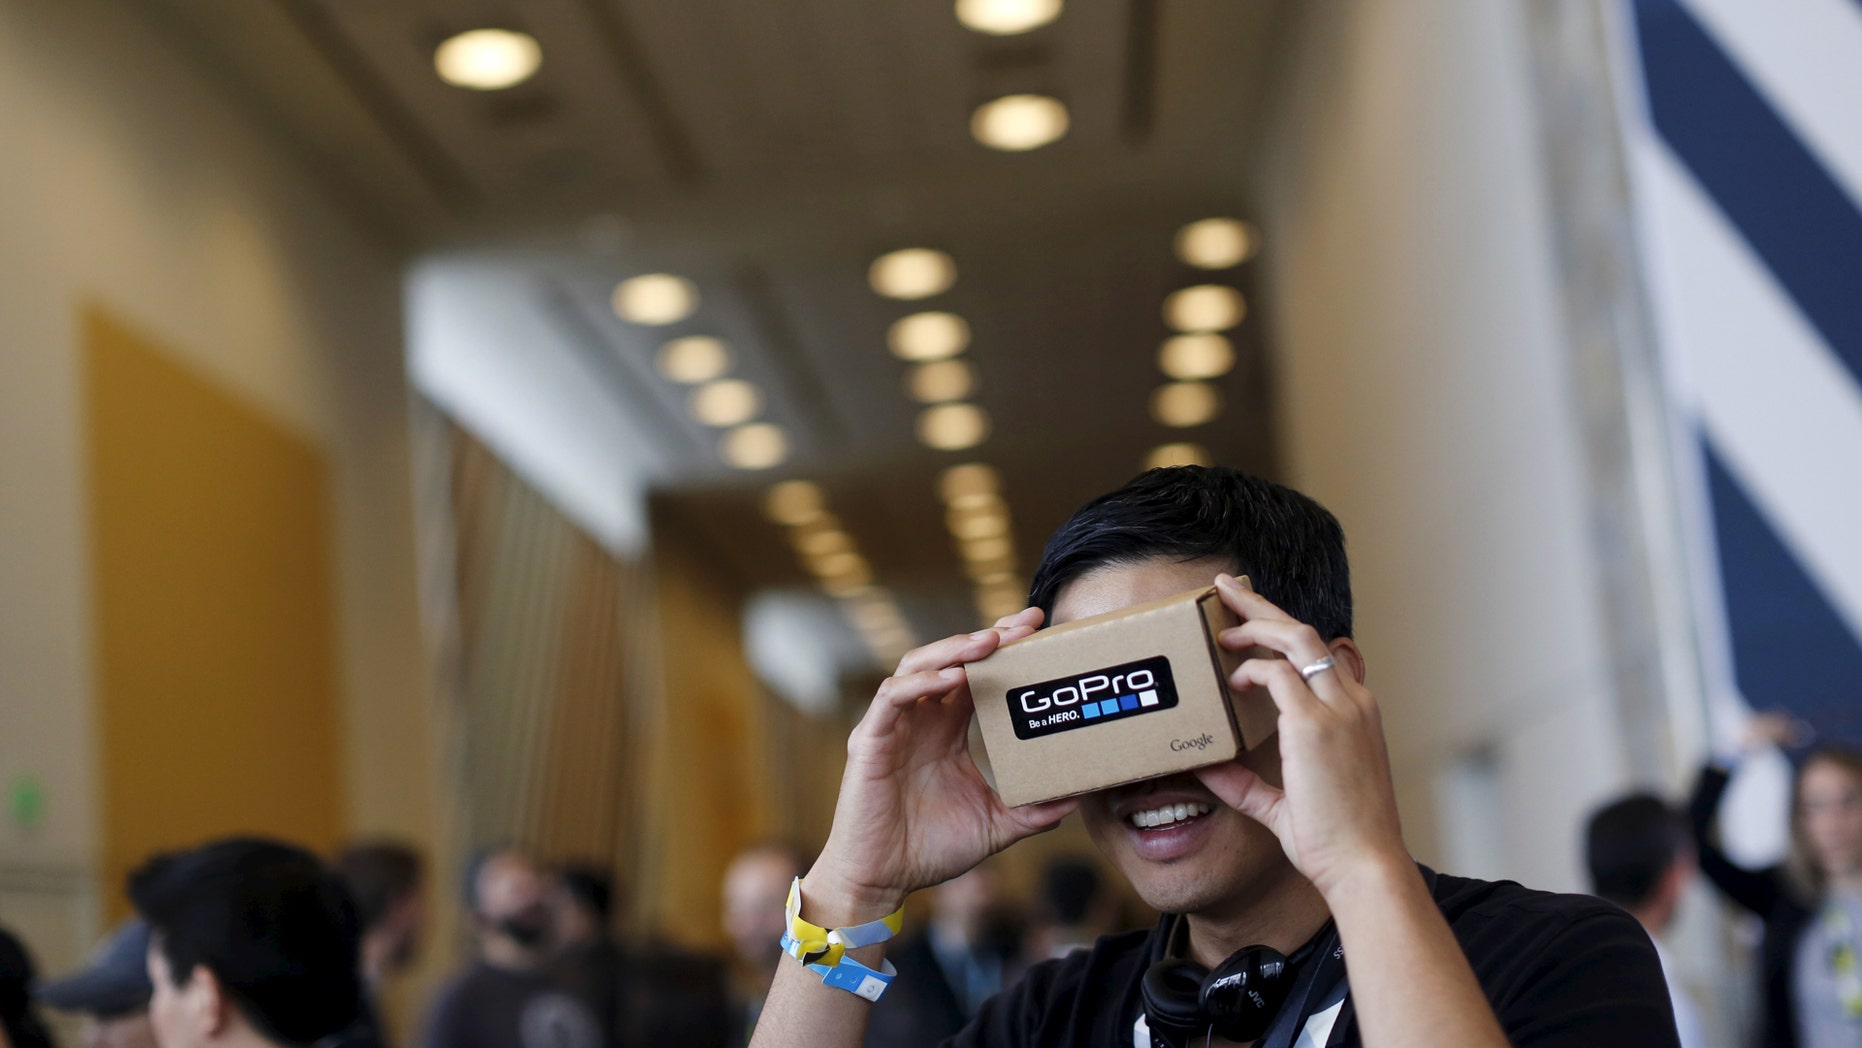 """File photo: A conference attendee looks through """"Cardboard,"""" a viewer that enables the user to view content from a smart phone in 3D, during the Google I/O developers conference in San Francisco, California May 28, 2015. (REUTERS/Robert Galbraith)"""